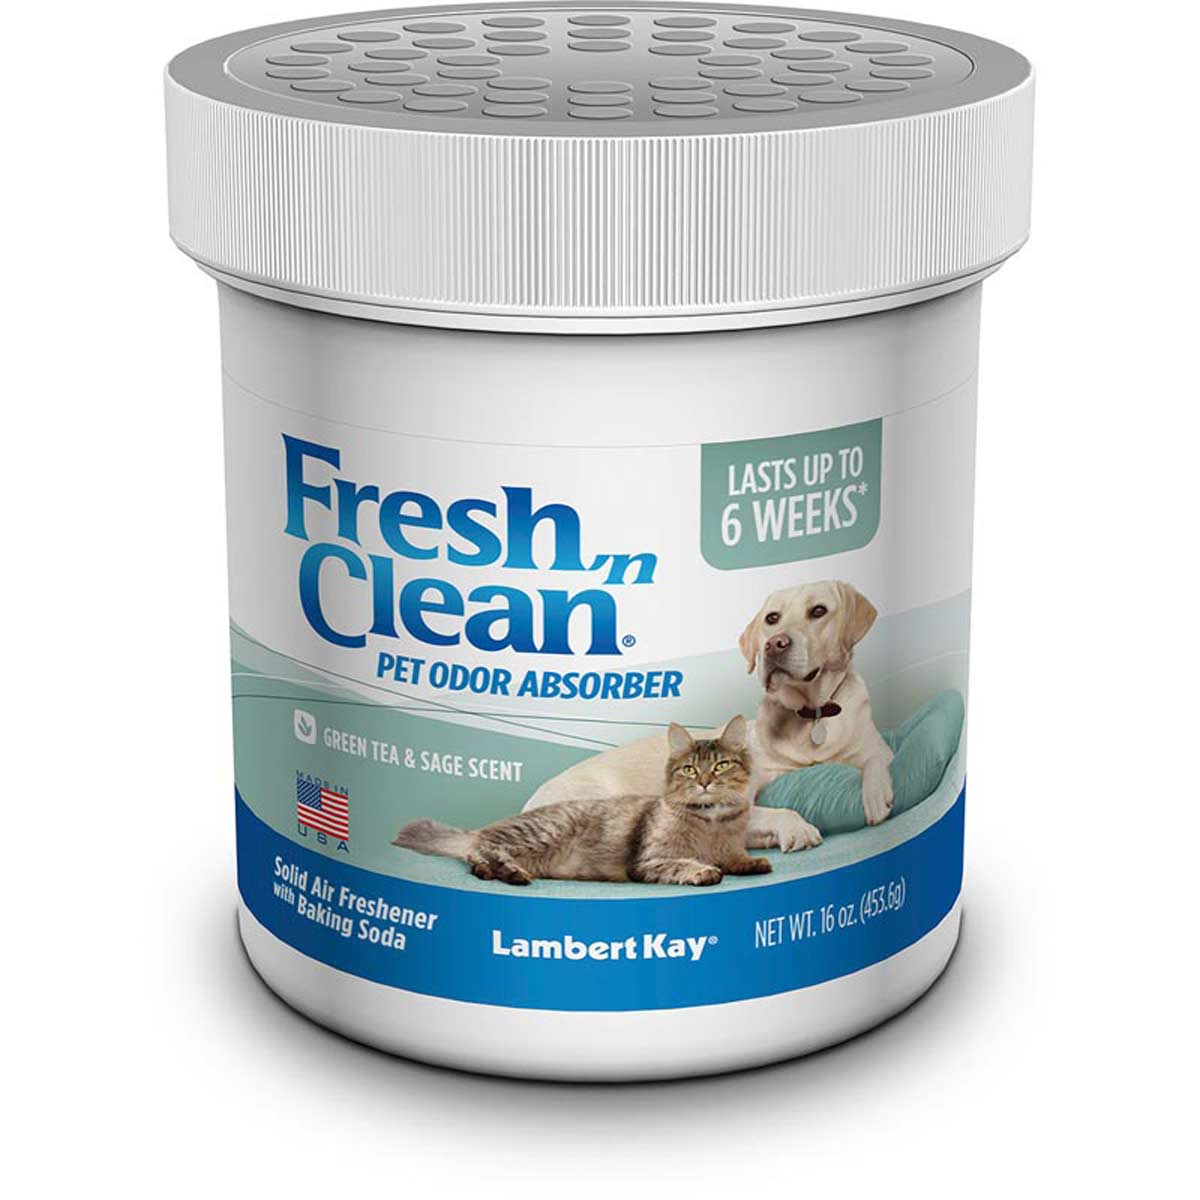 Fresh n Clean Pet Odor Absorber Jar - Green Tea/Sage 16 oz